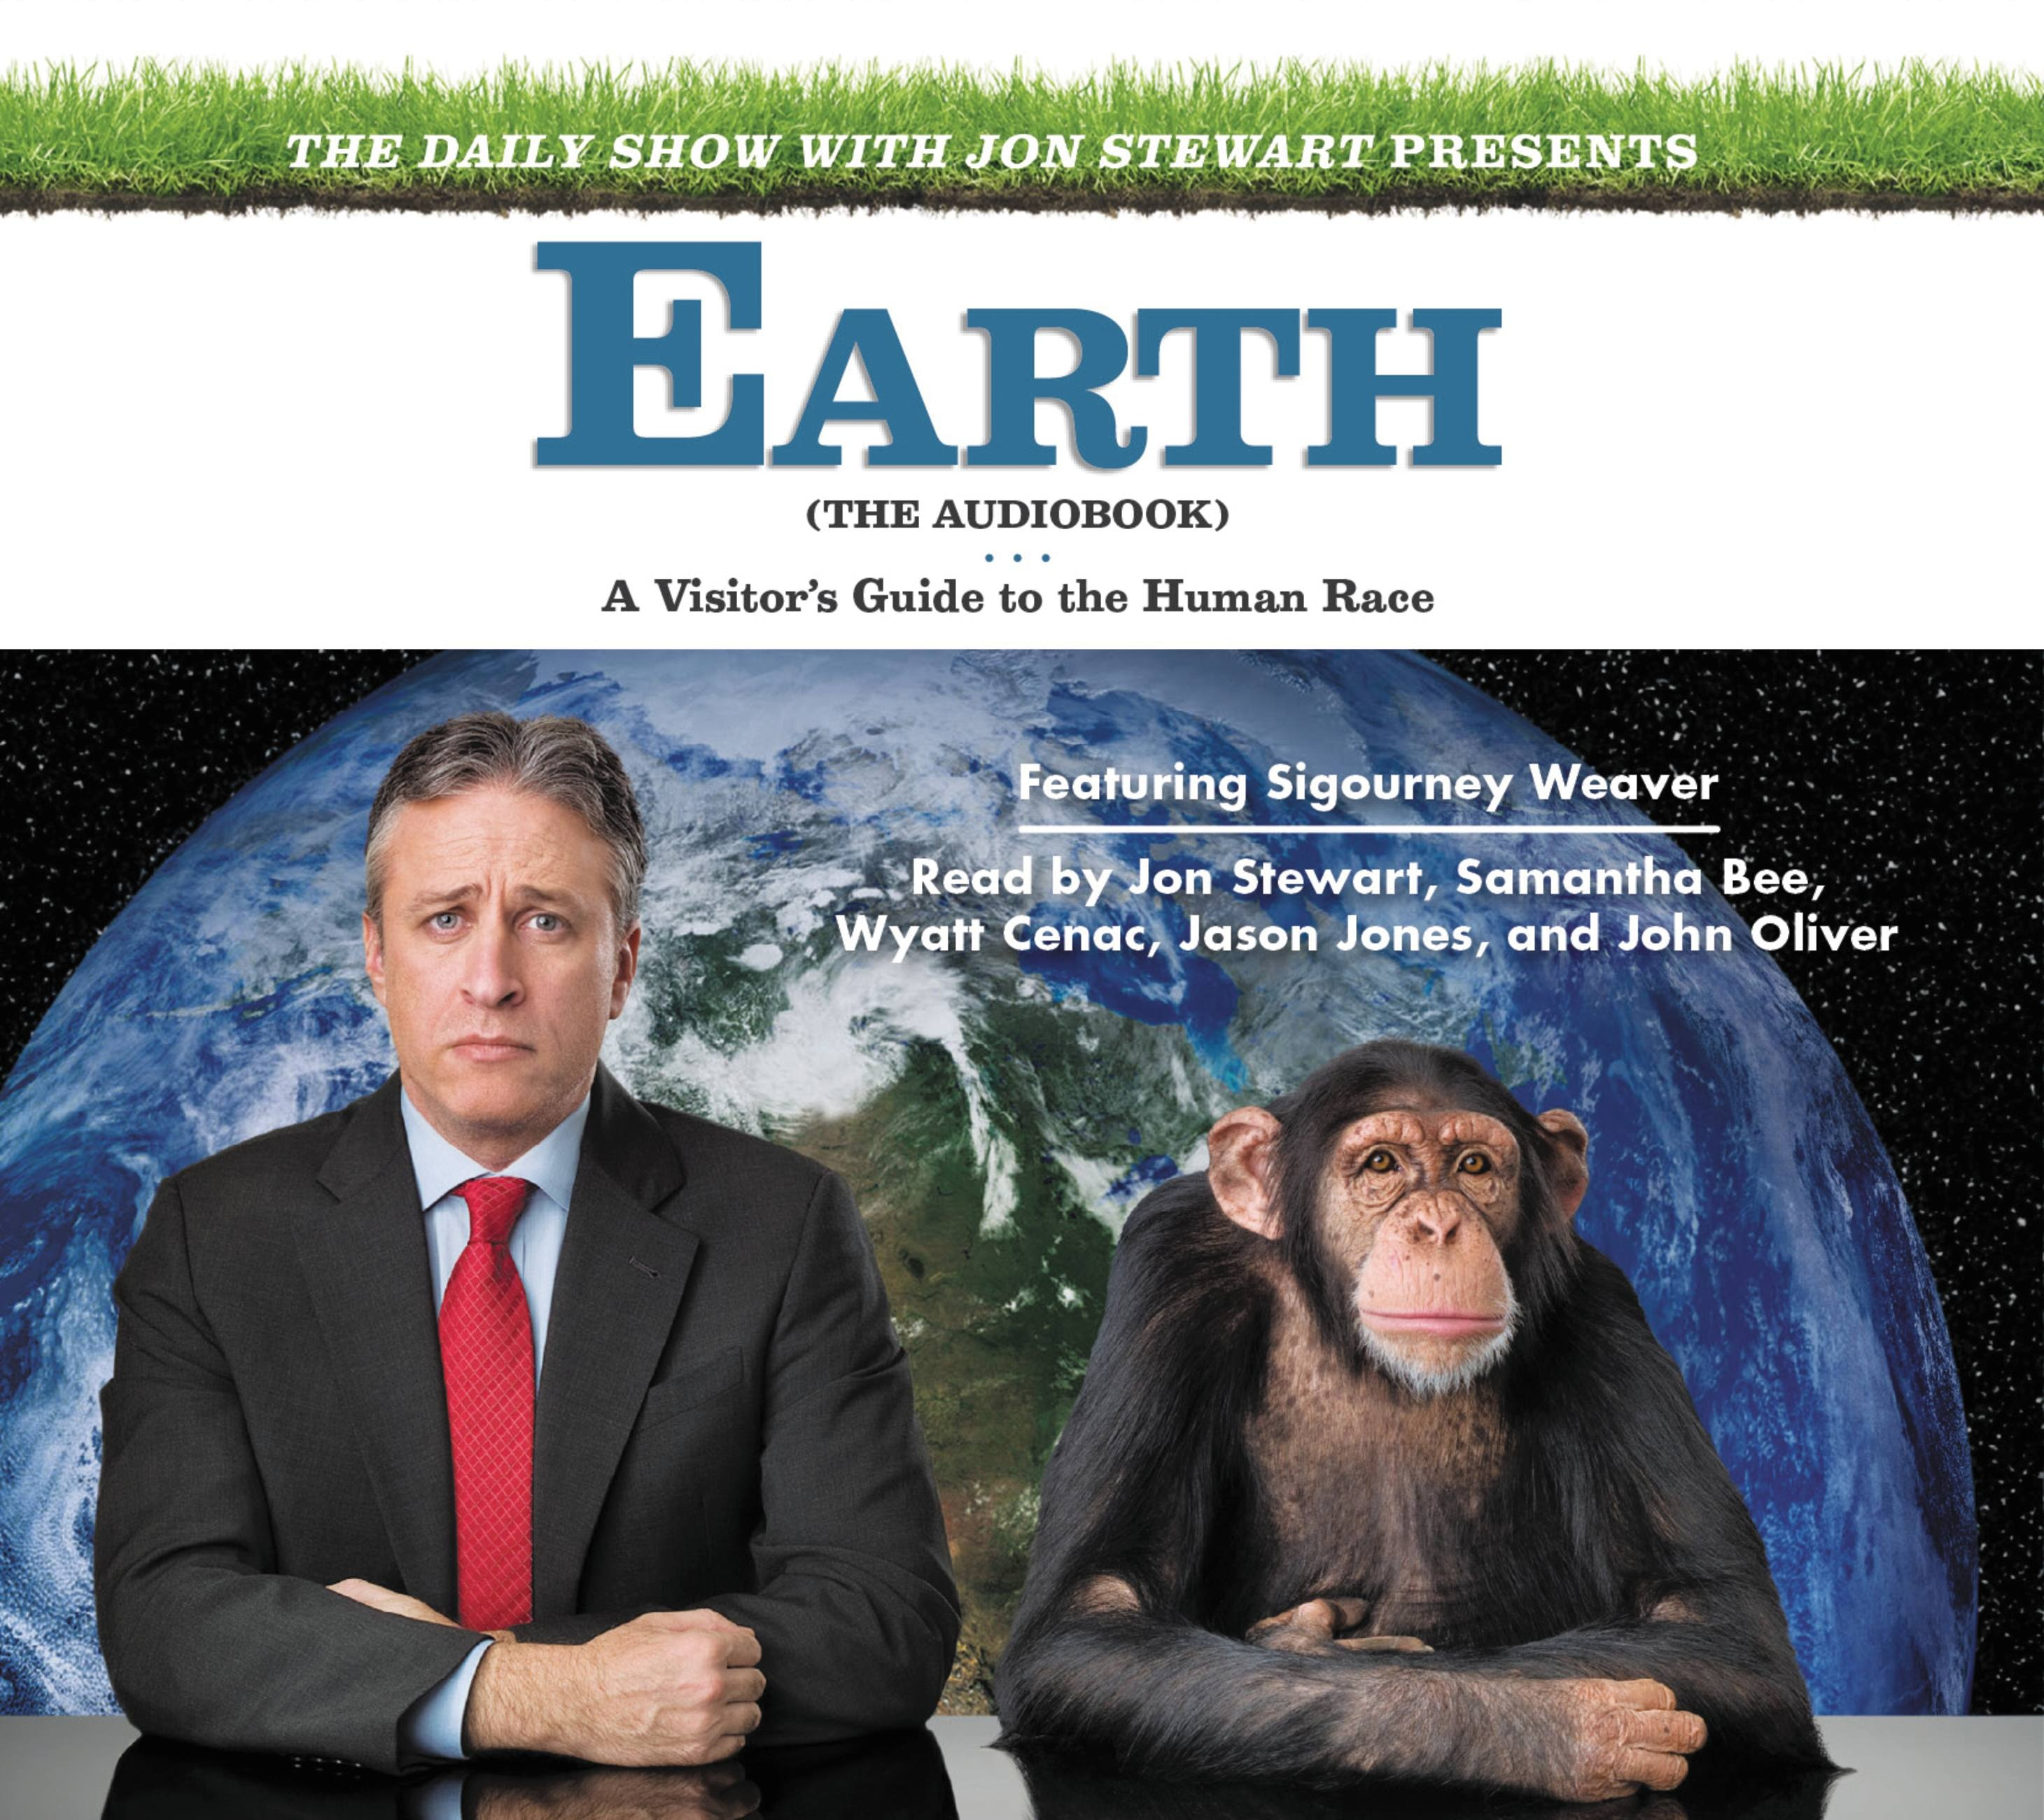 The Daily Show with Jon Stewart Presents Earth (The Audiobook)